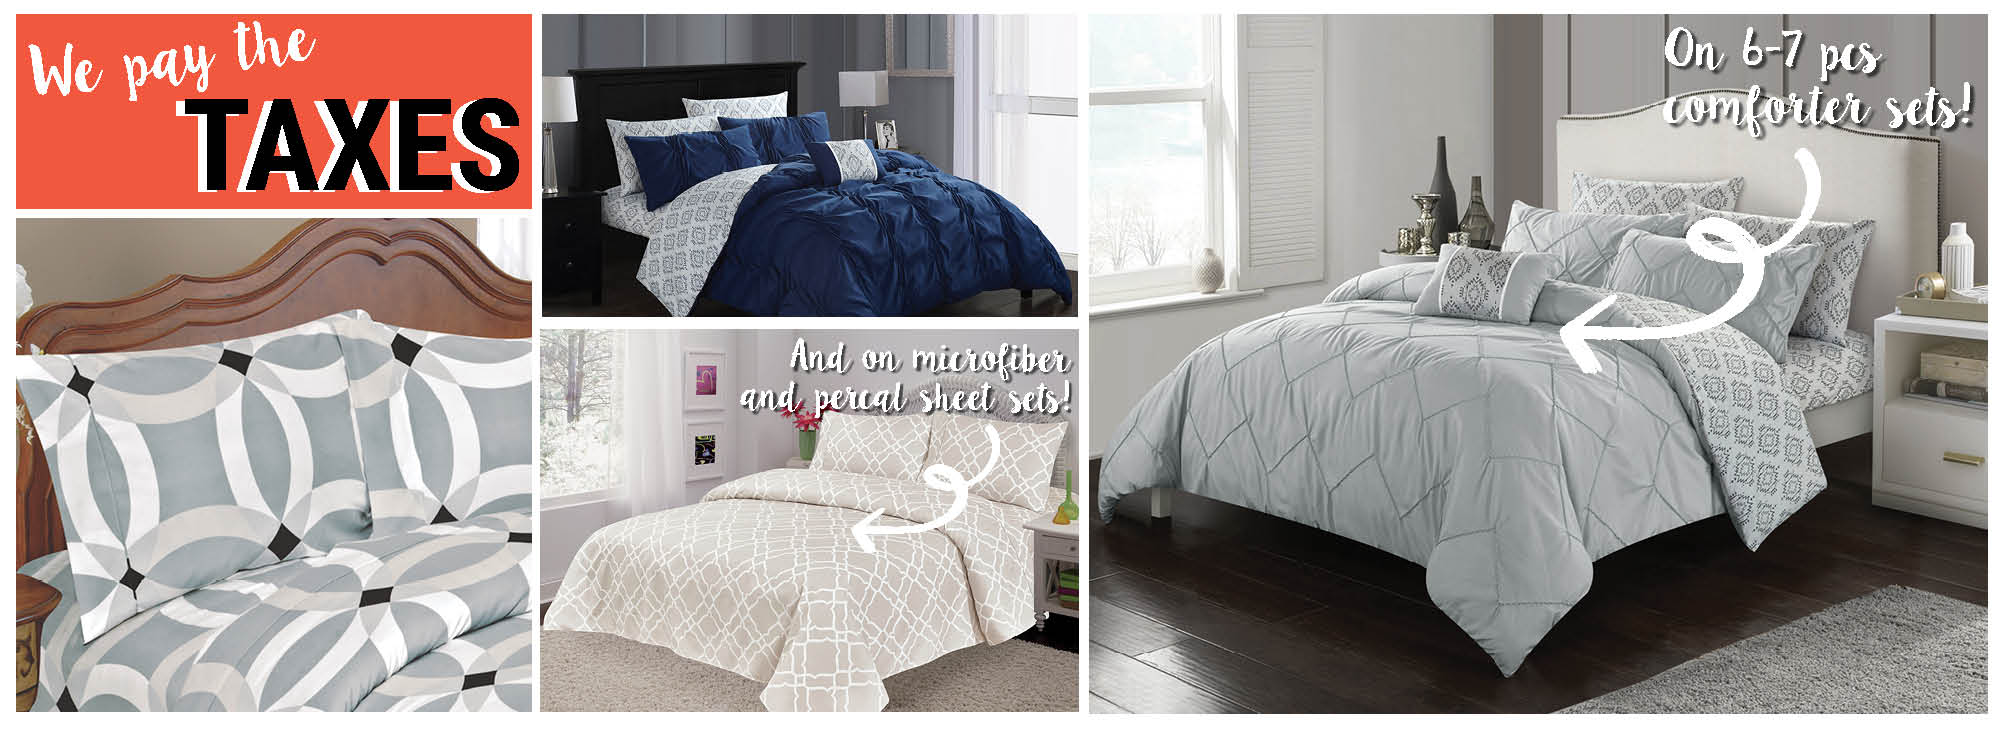 We pay the taxes on selected 6-7 pcs comforter sets and on selected microfiber and percal sheet sets!